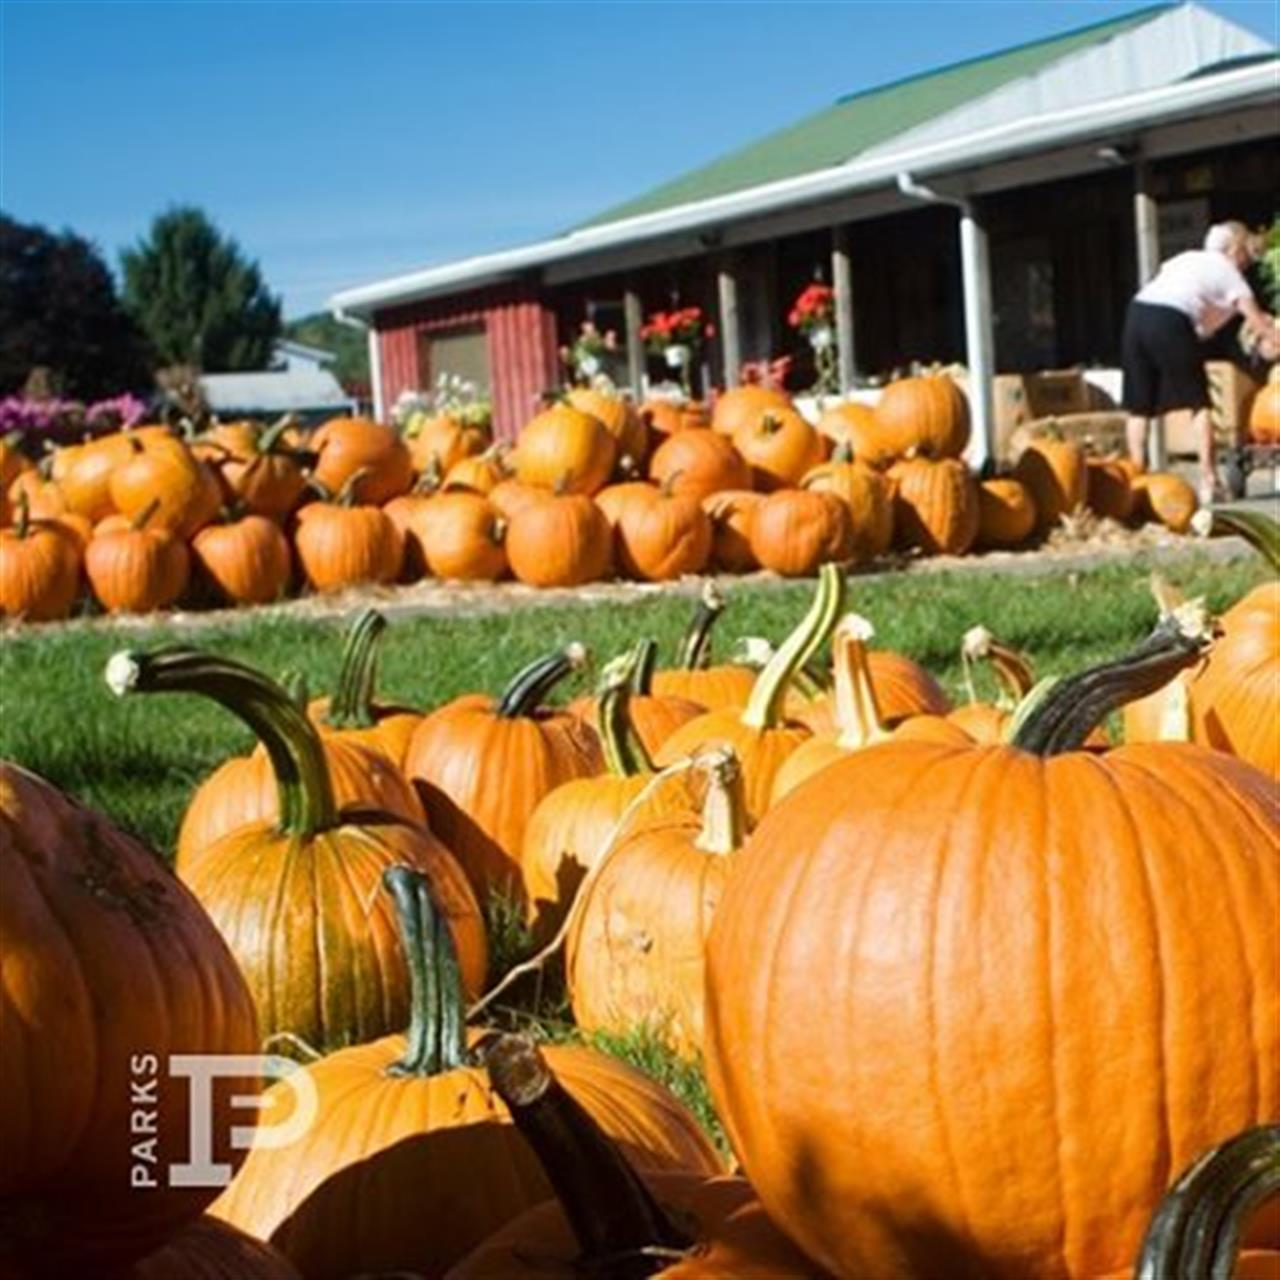 Don't forget! Tomorrow is Pumpkinfest 2016 in Downtown Franklin from 10am-6pm and is one of the most popular events on Main Street. Costume contests, pumpkin carving, food trucks, photo ops and more! ??? #pumpkinfest2016 #parksonmain #visitfranklin #discoverfranklin #leadingrelocal